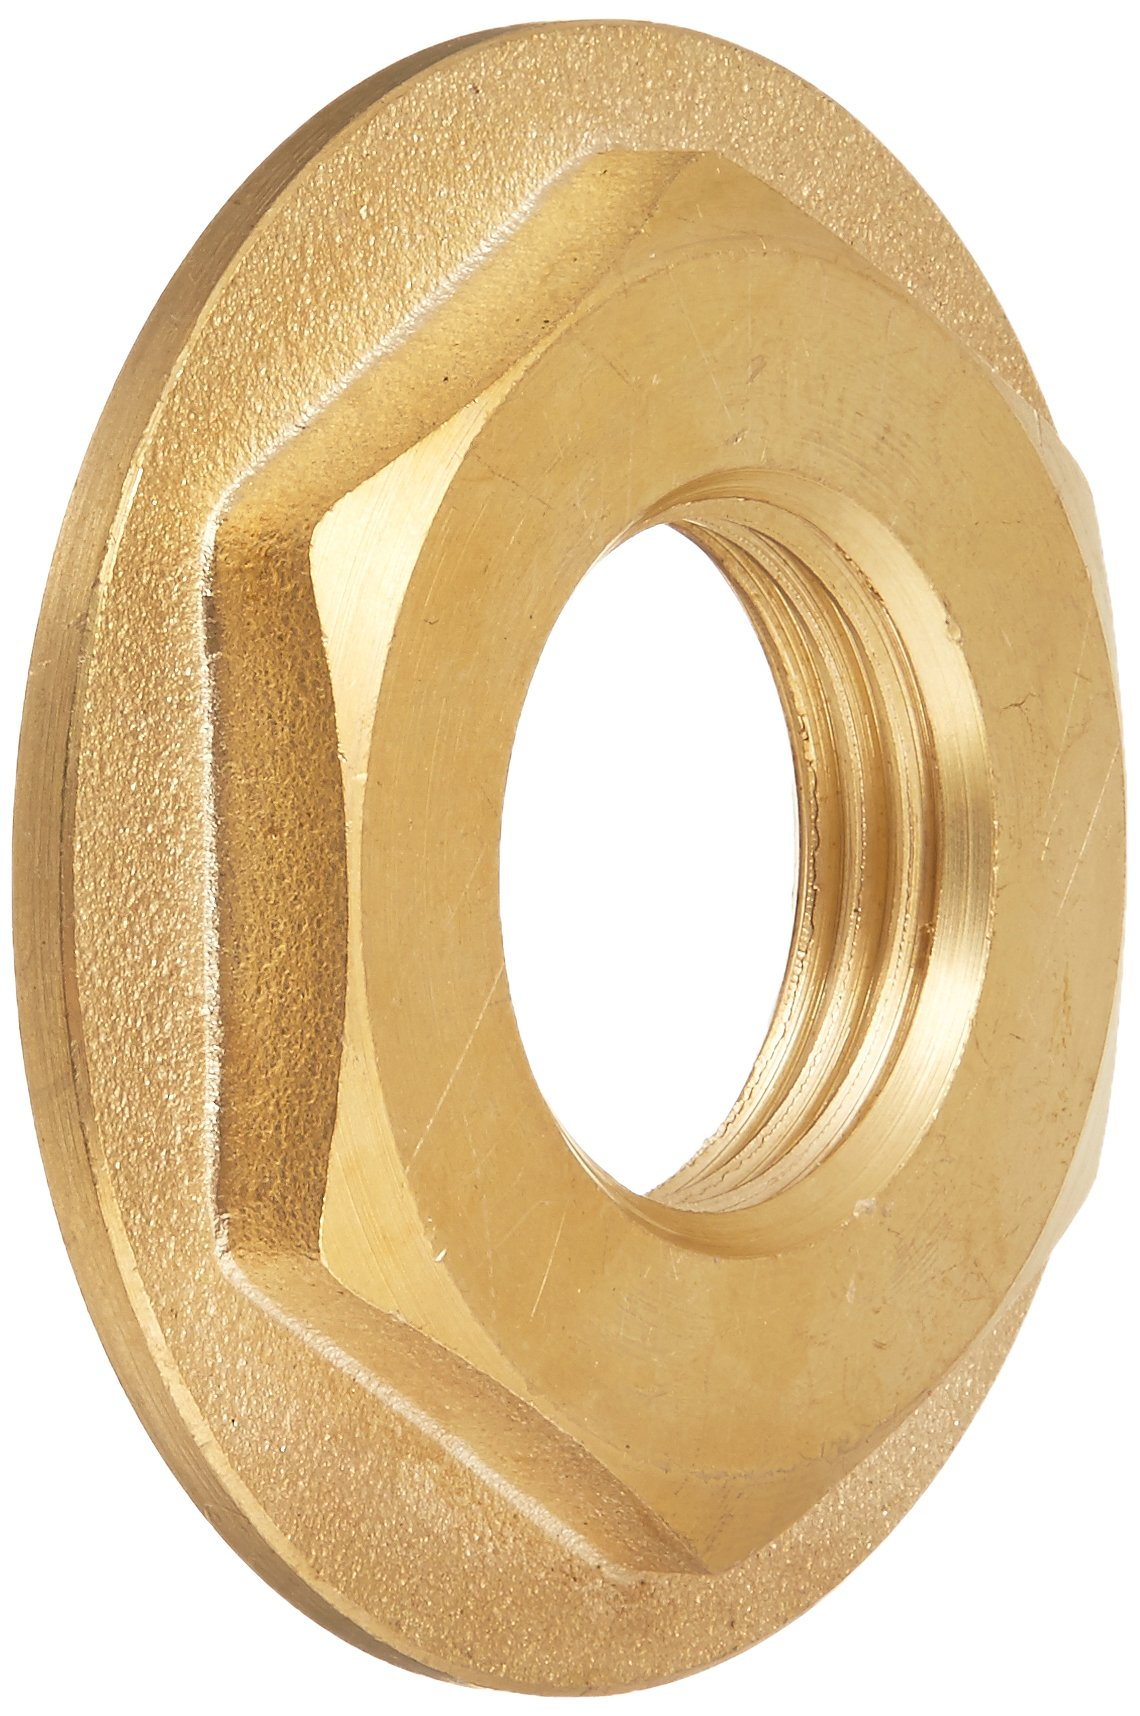 Delta RP61827 Addison On Wall Spout Flange Nut